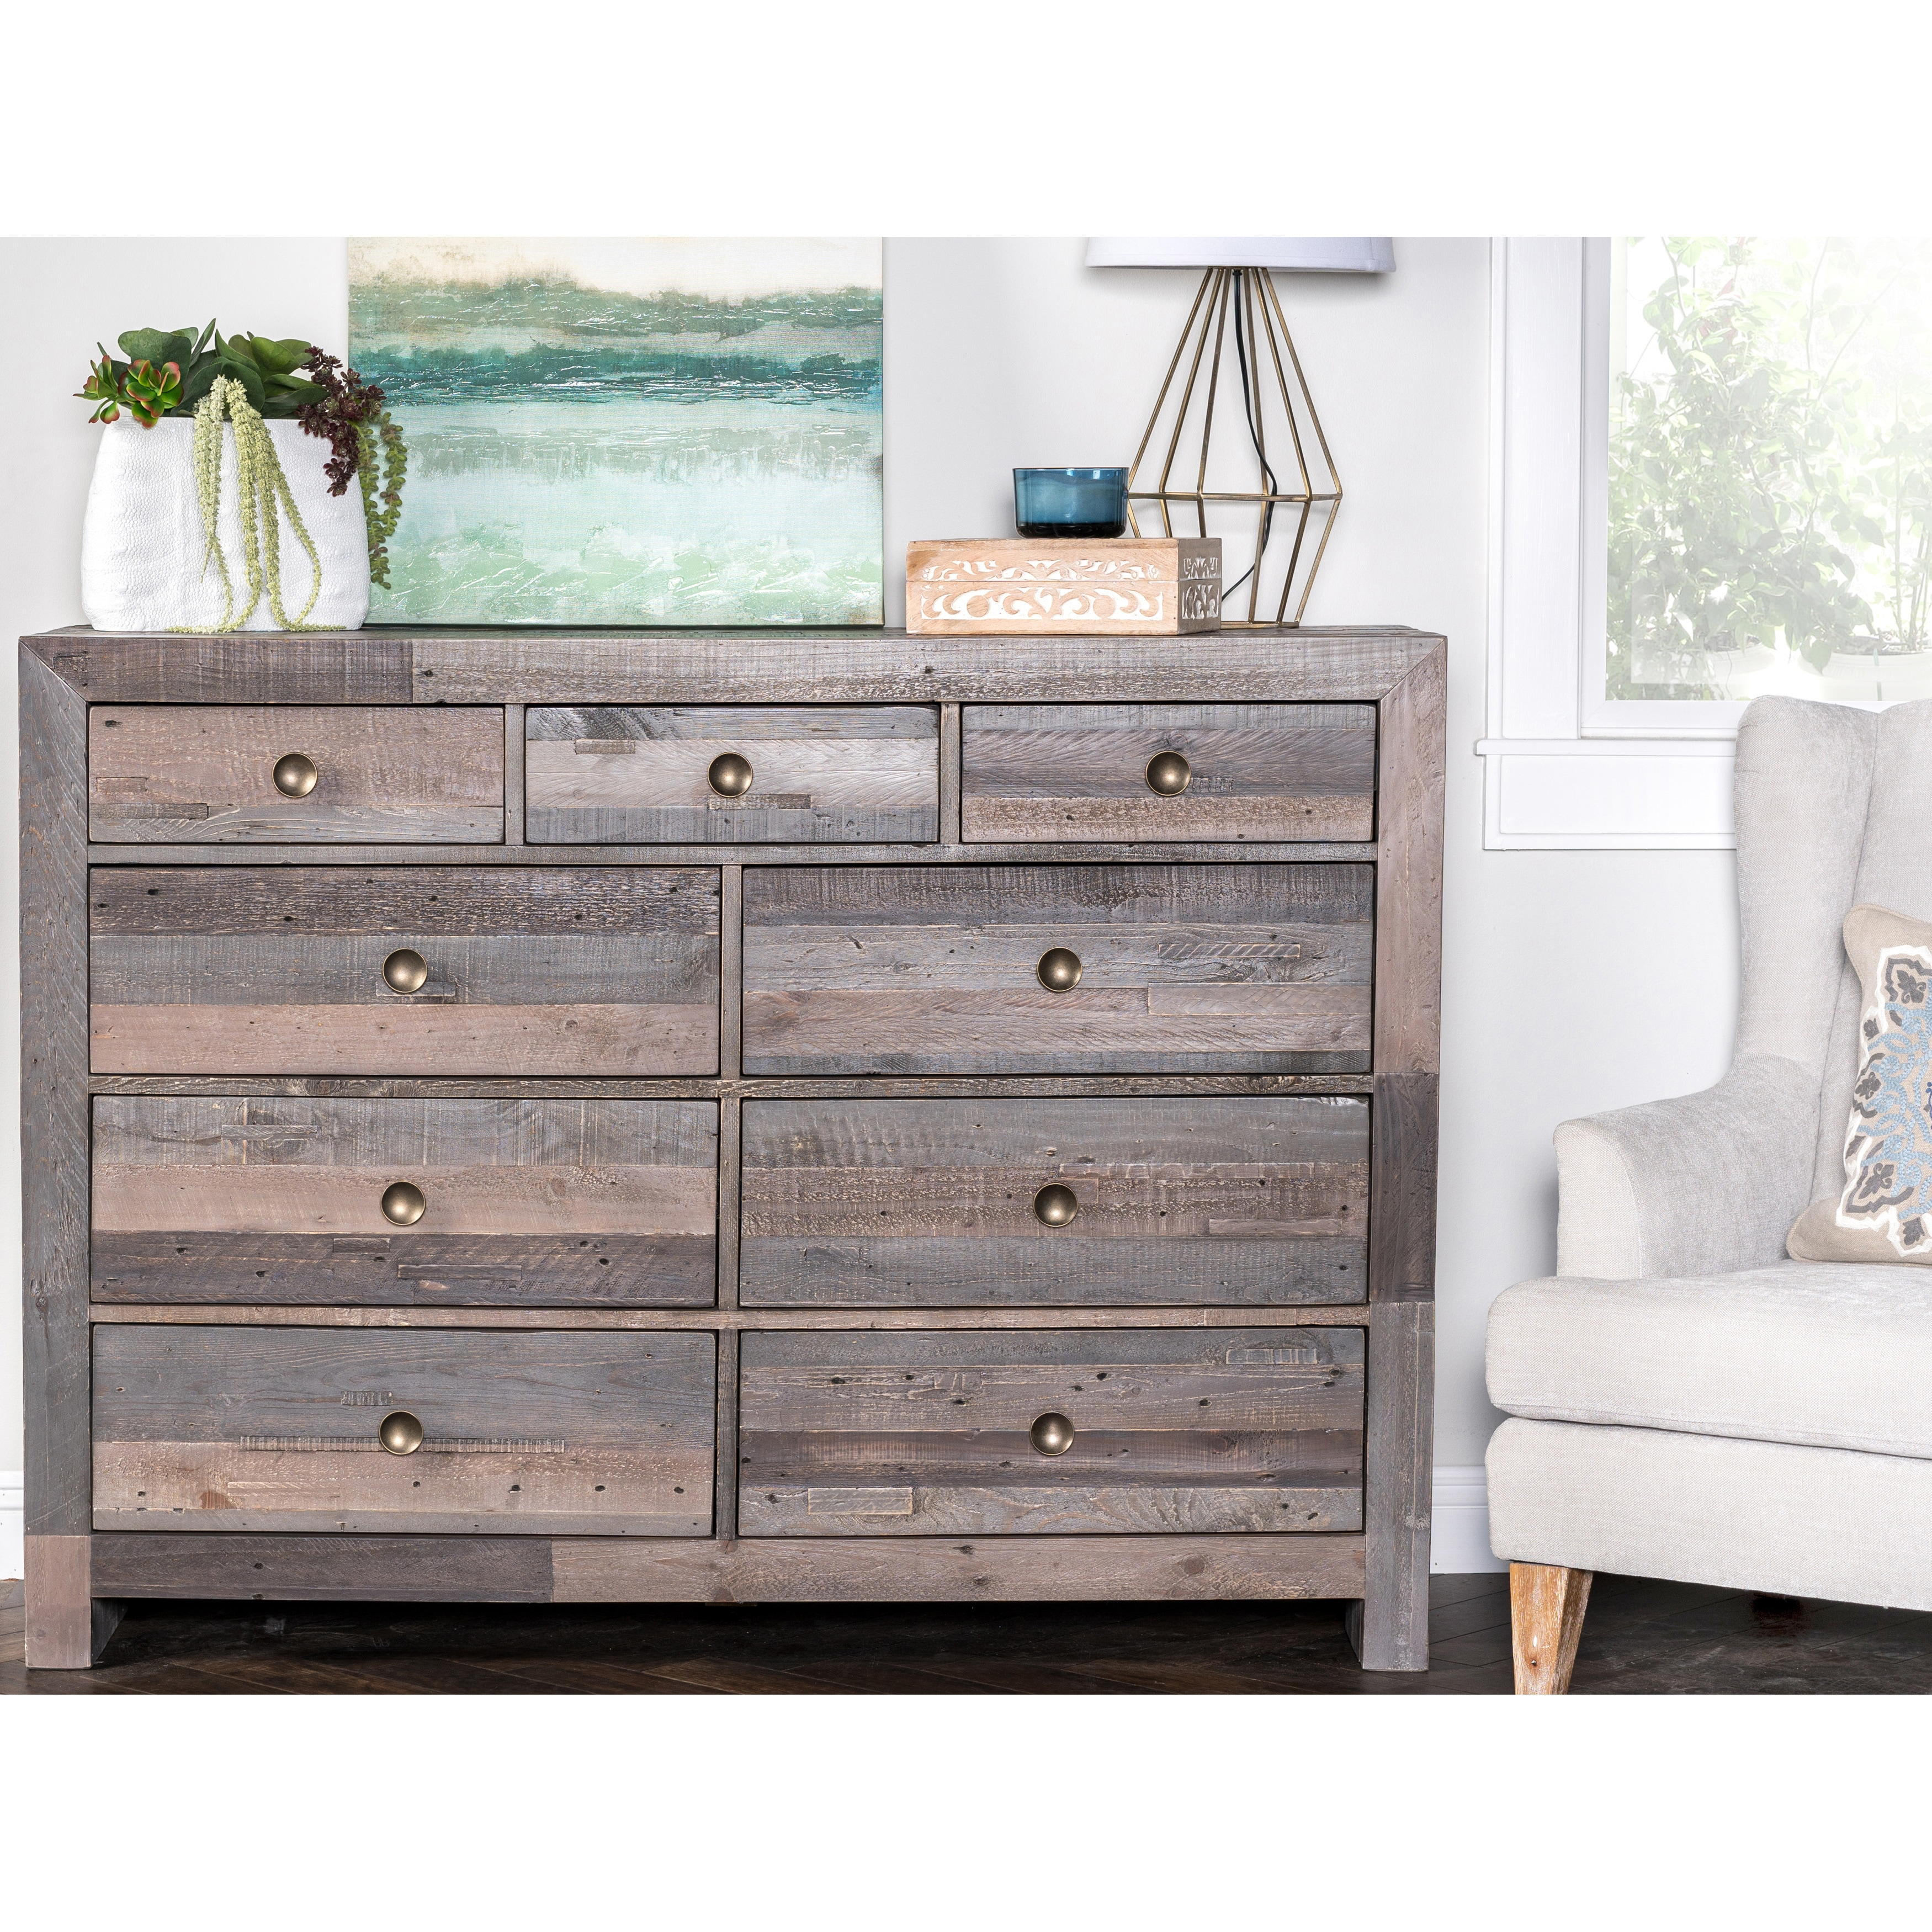 Carbon Loft Edison Reclaimed Wood 9 Drawer Dresser Free Shipping On Orders Over 45 9999918683967